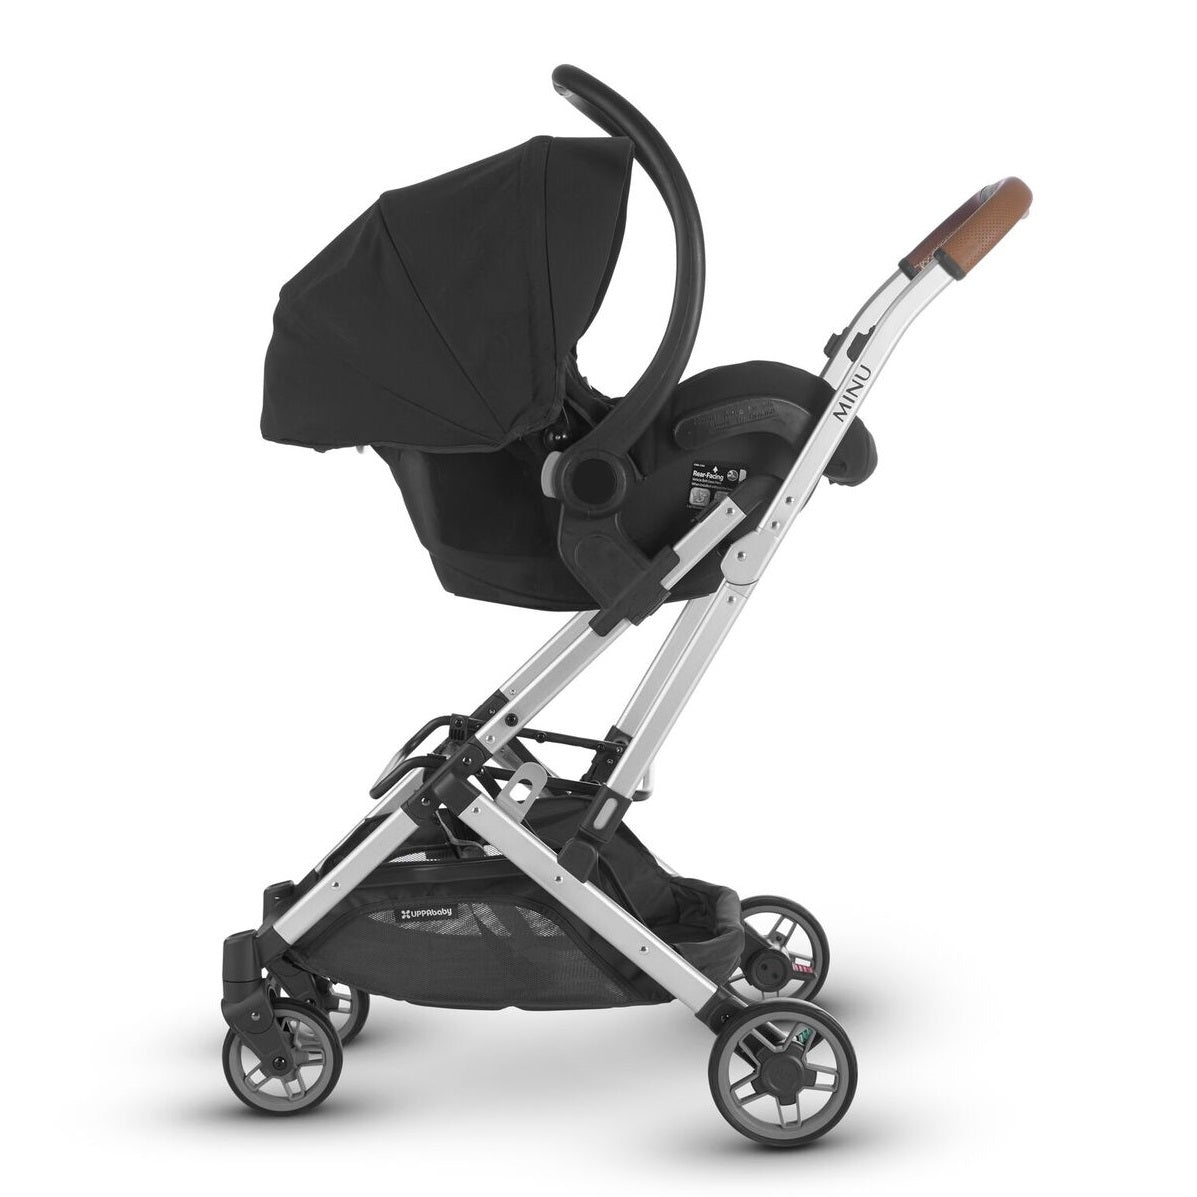 UPPAbaby MINU Adapter For Maxi Cosi Cybex Nuna Infant Car Seat